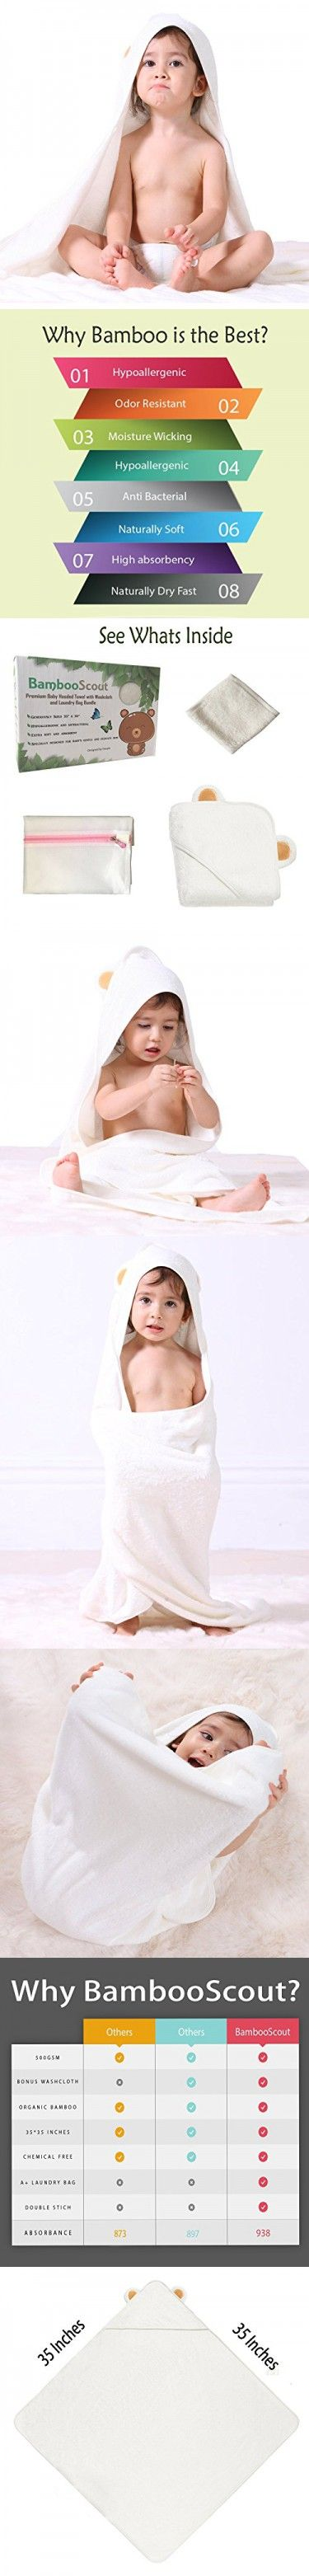 Bamboo Hooded Baby Bath Towel, Washcloth (white), and Laundry Bag Antibacterial and Hypoallergenic | Extra Large, for Infants, Toddlers, Newborn, and Baby - Ultra Soft Touch !